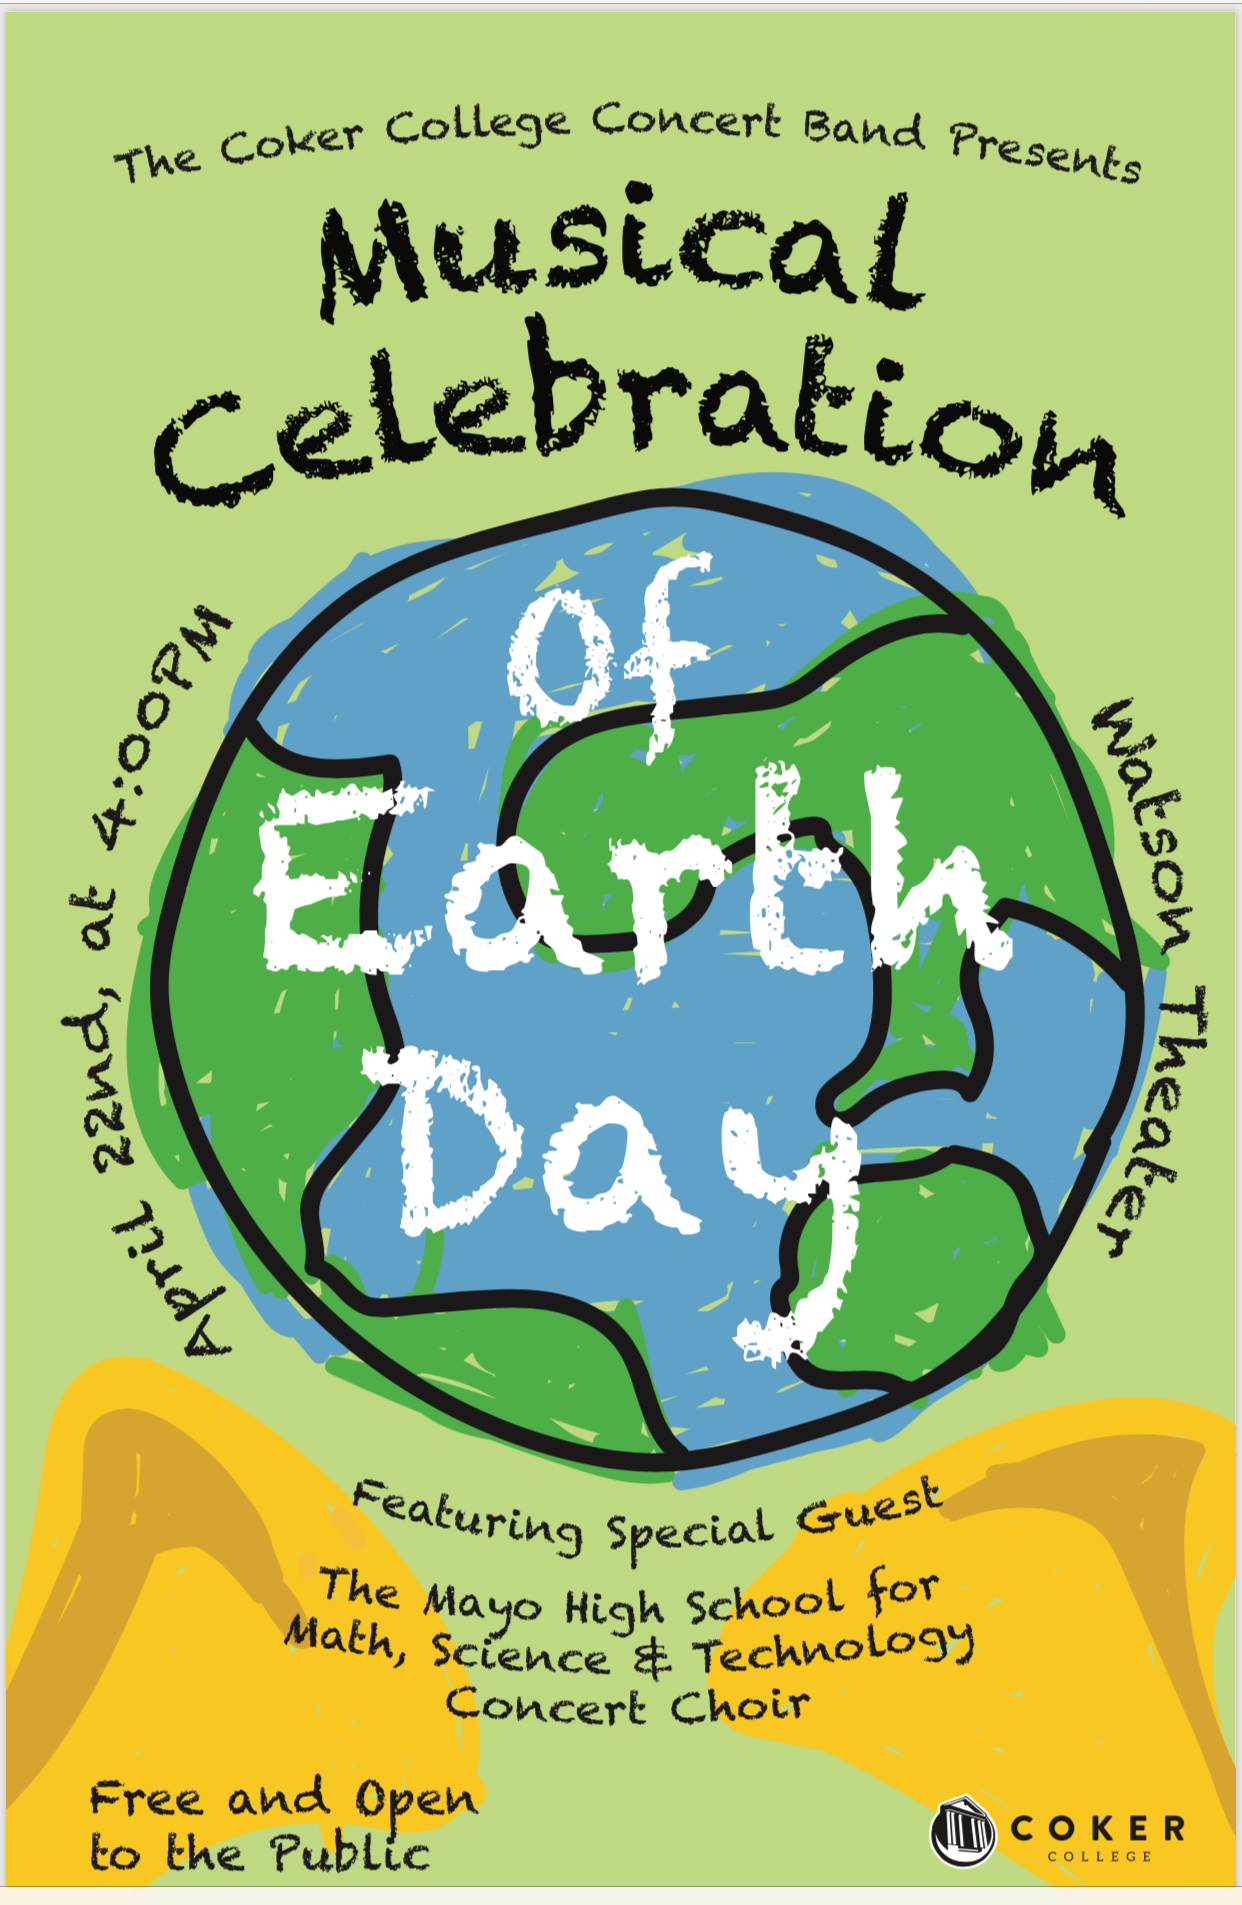 Coker College Campus Map.City Of Hartsville Coker College Band Earth Day Concert